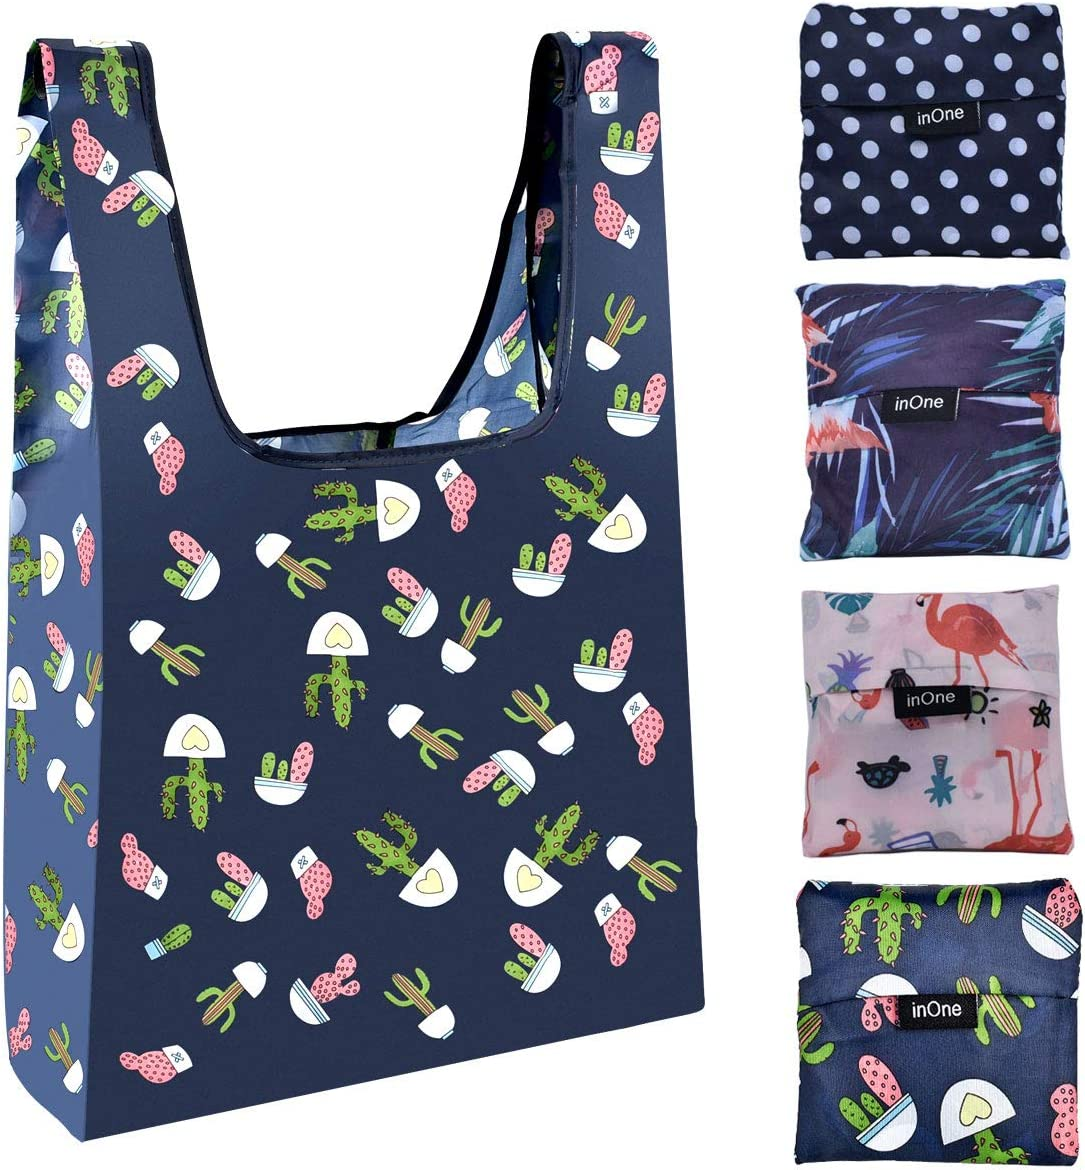 Reusable Grocery Bags Portable Fold Shopping Tote Bags with Pouch - 4 Pack